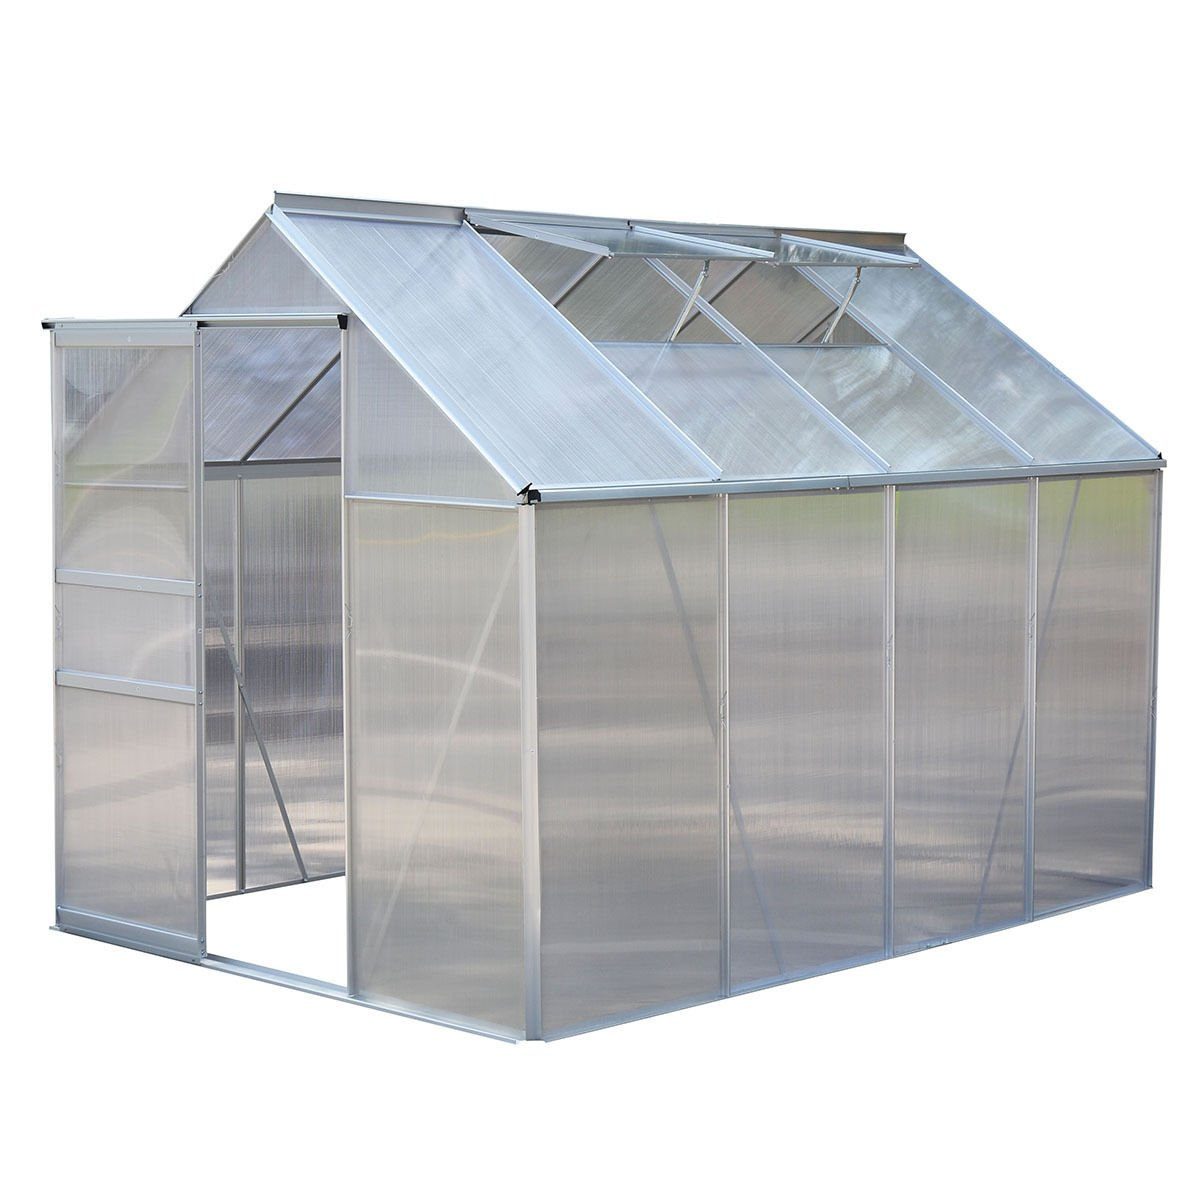 Giantex 8.2x6.2Ft Greenhouse Aluminum Frame All Weather Walk-In Heavy Duty Polycarbonate by Giantex